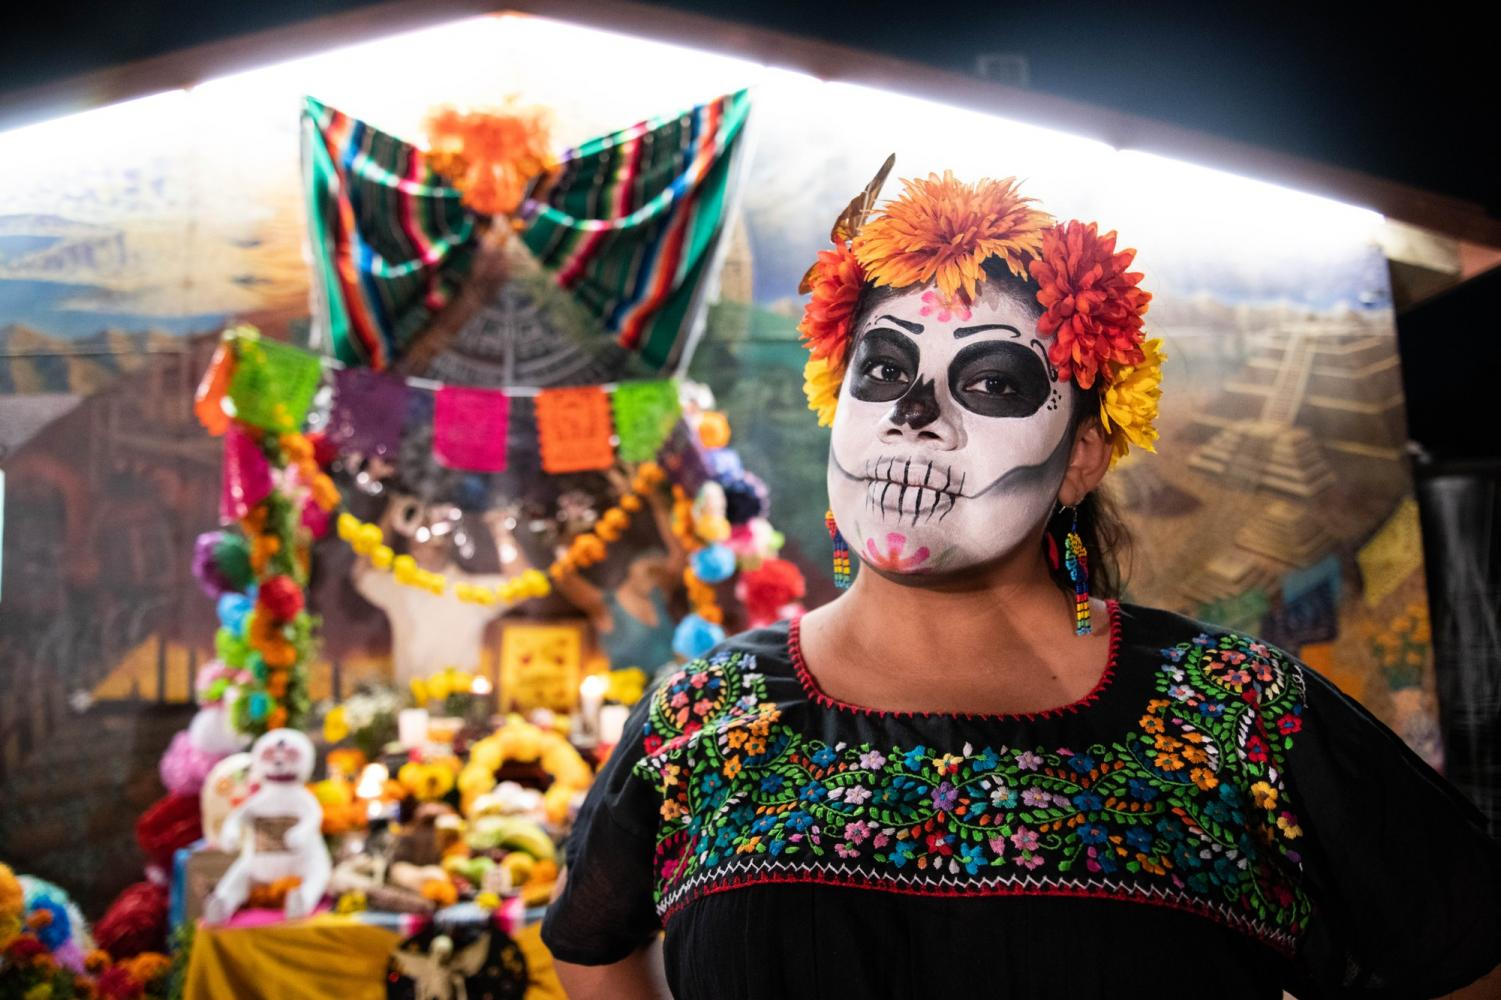 Yesica Catalan celebrates Noche de Ofrenda event at  the Chicano House at CSUN on October 31, 2019 in Northridge, Calif. Photo credit: Sonia Gurrola